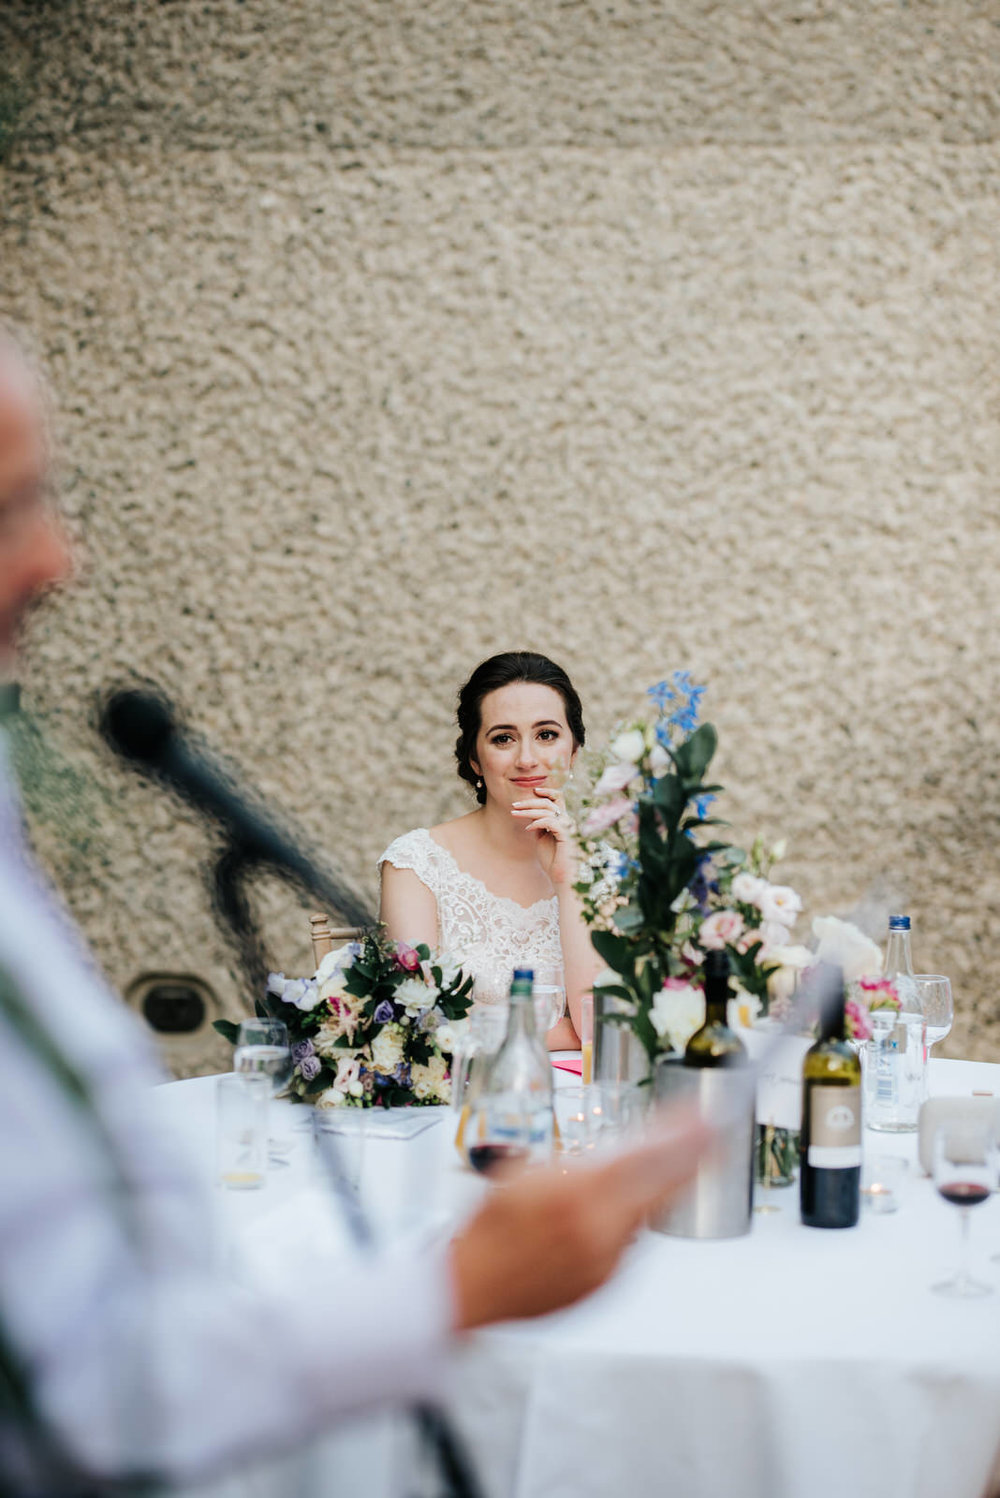 Bride looks emotional and grateful as close family member delivers a wedding speech